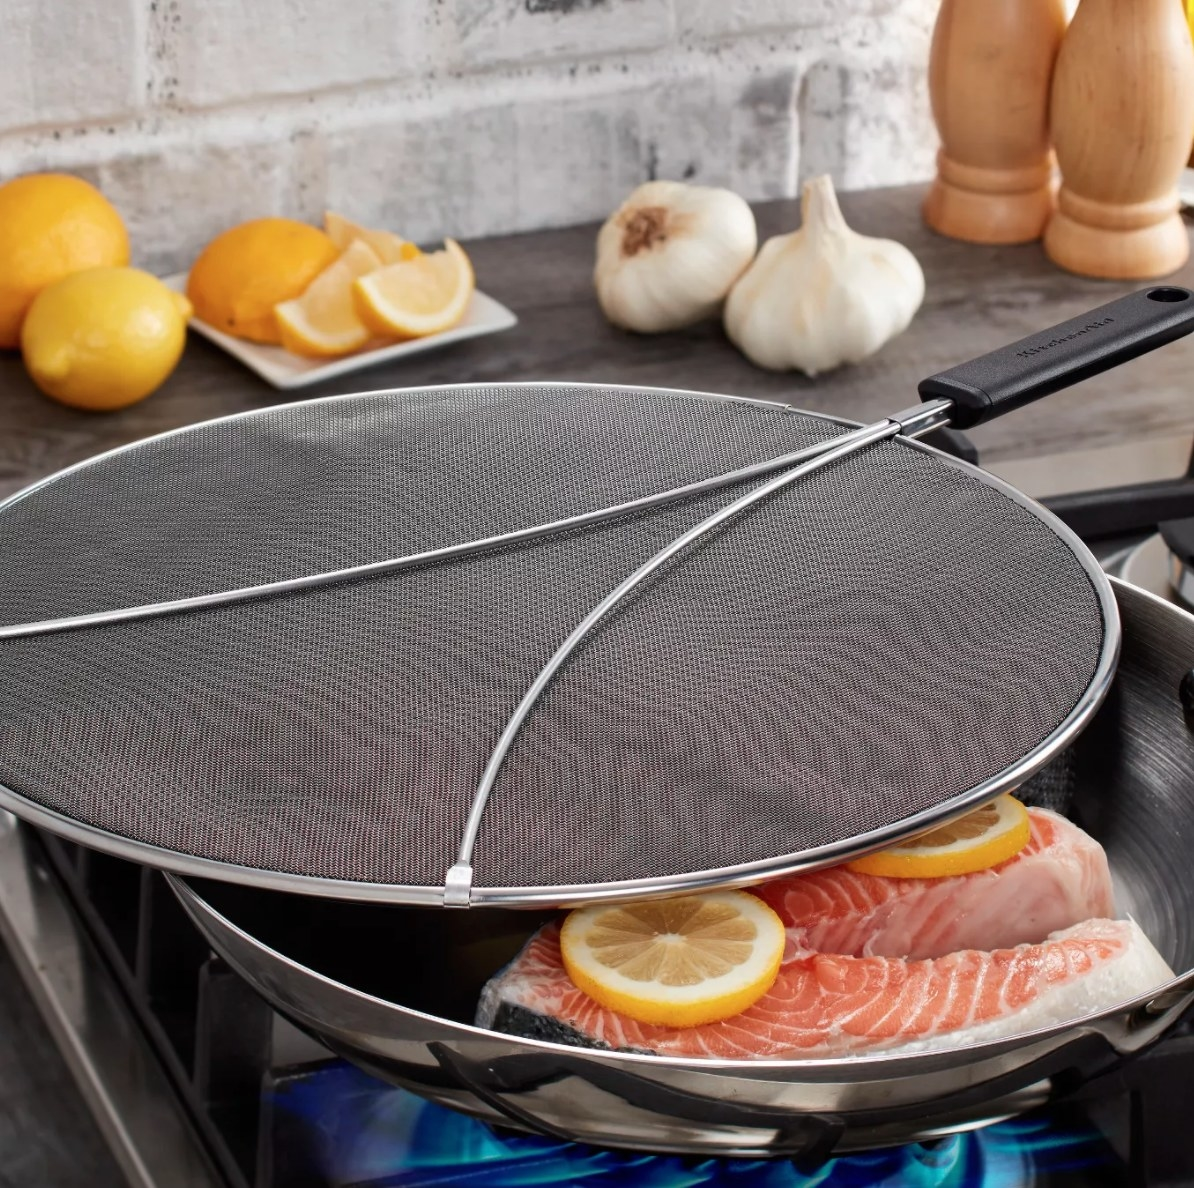 The splatter screen being used to cover a pan that's cooking meat